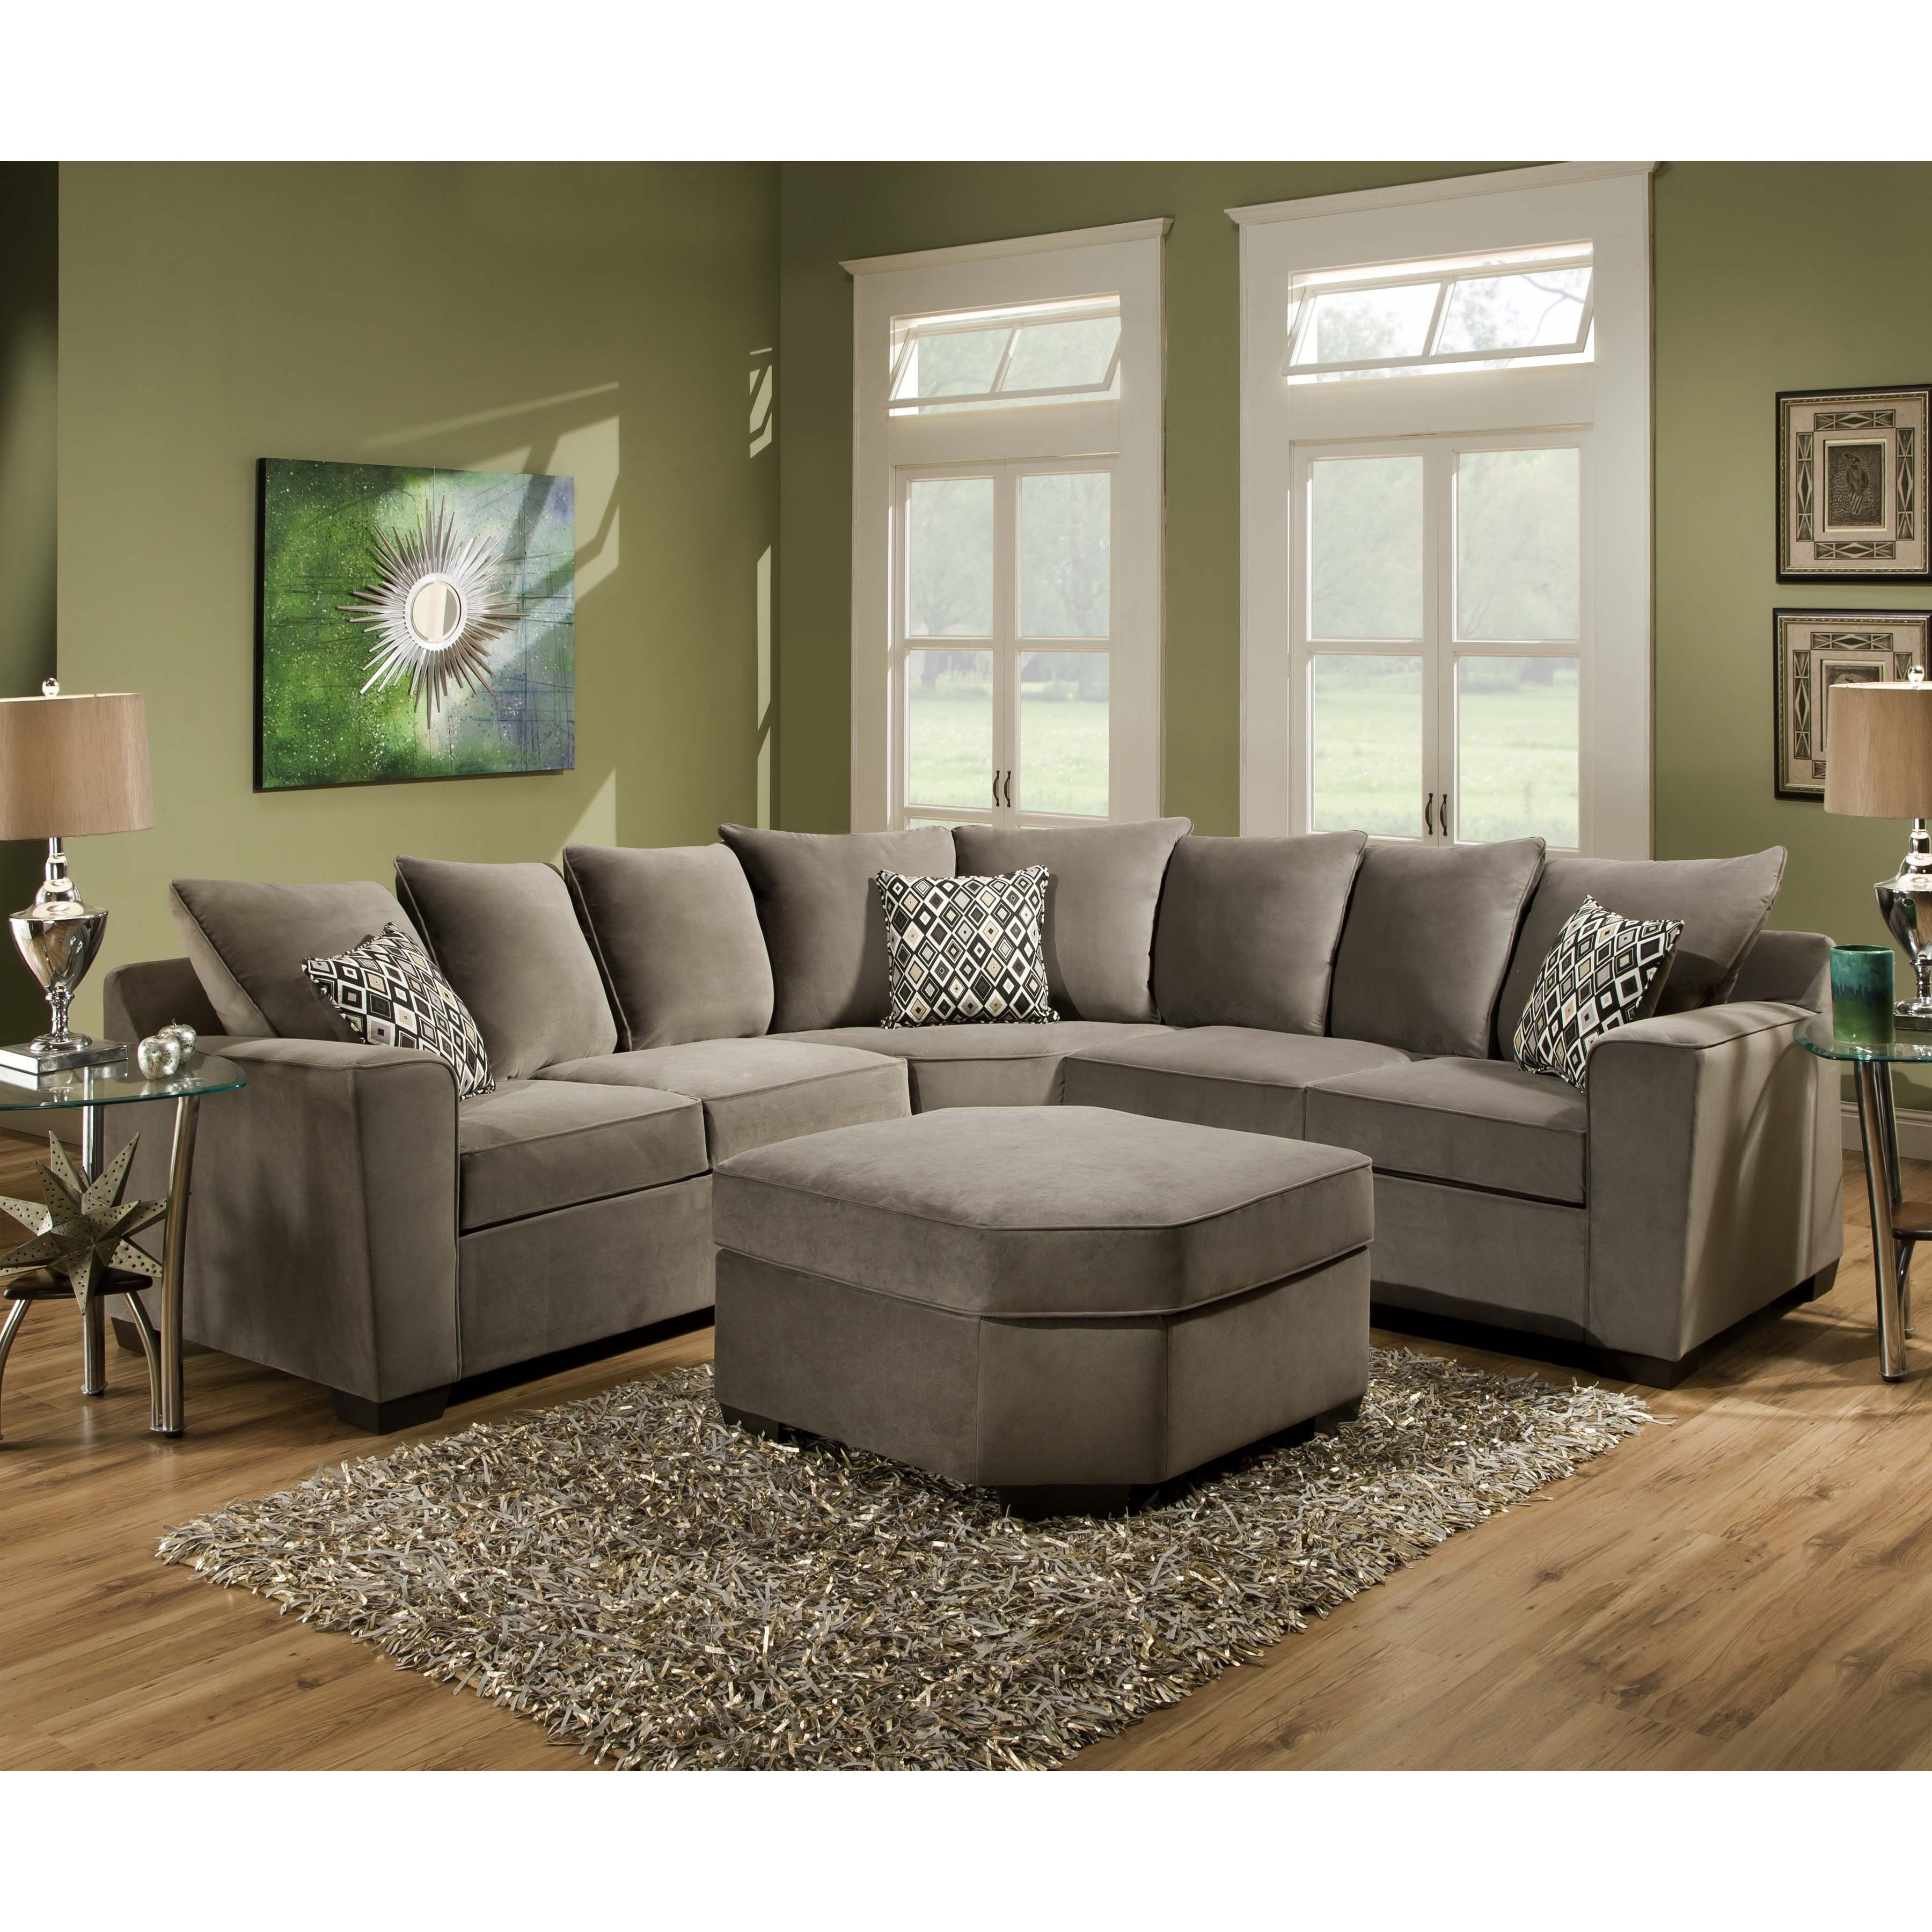 20 Best Collection Of High Back Sectional Sofas With Regard To Sectional Sofas With High Backs (View 1 of 10)